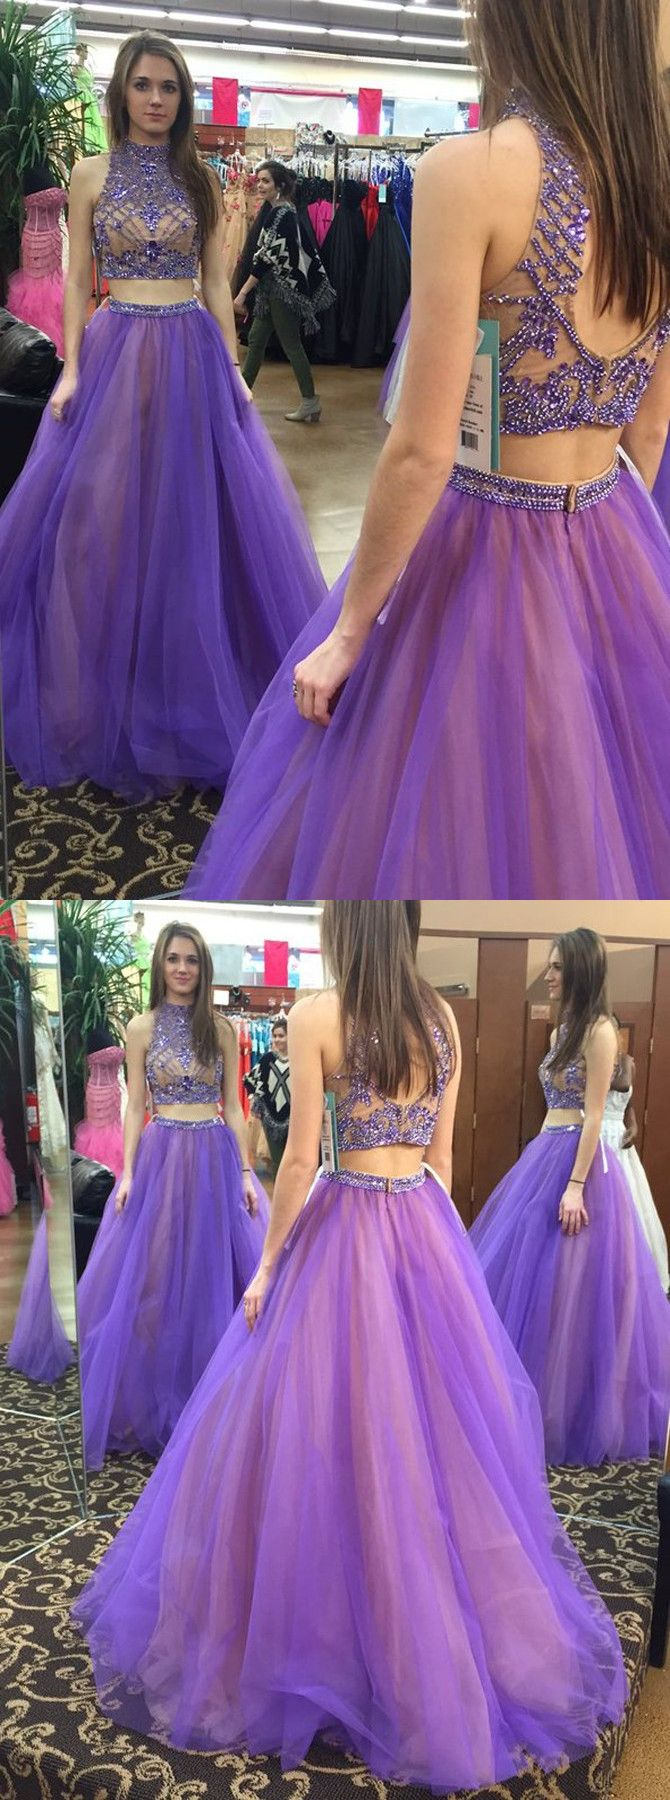 2017 prom dresses, two piece prom dresses,prom ideas, prom collection, purple prom, evening dresses, formal dresses